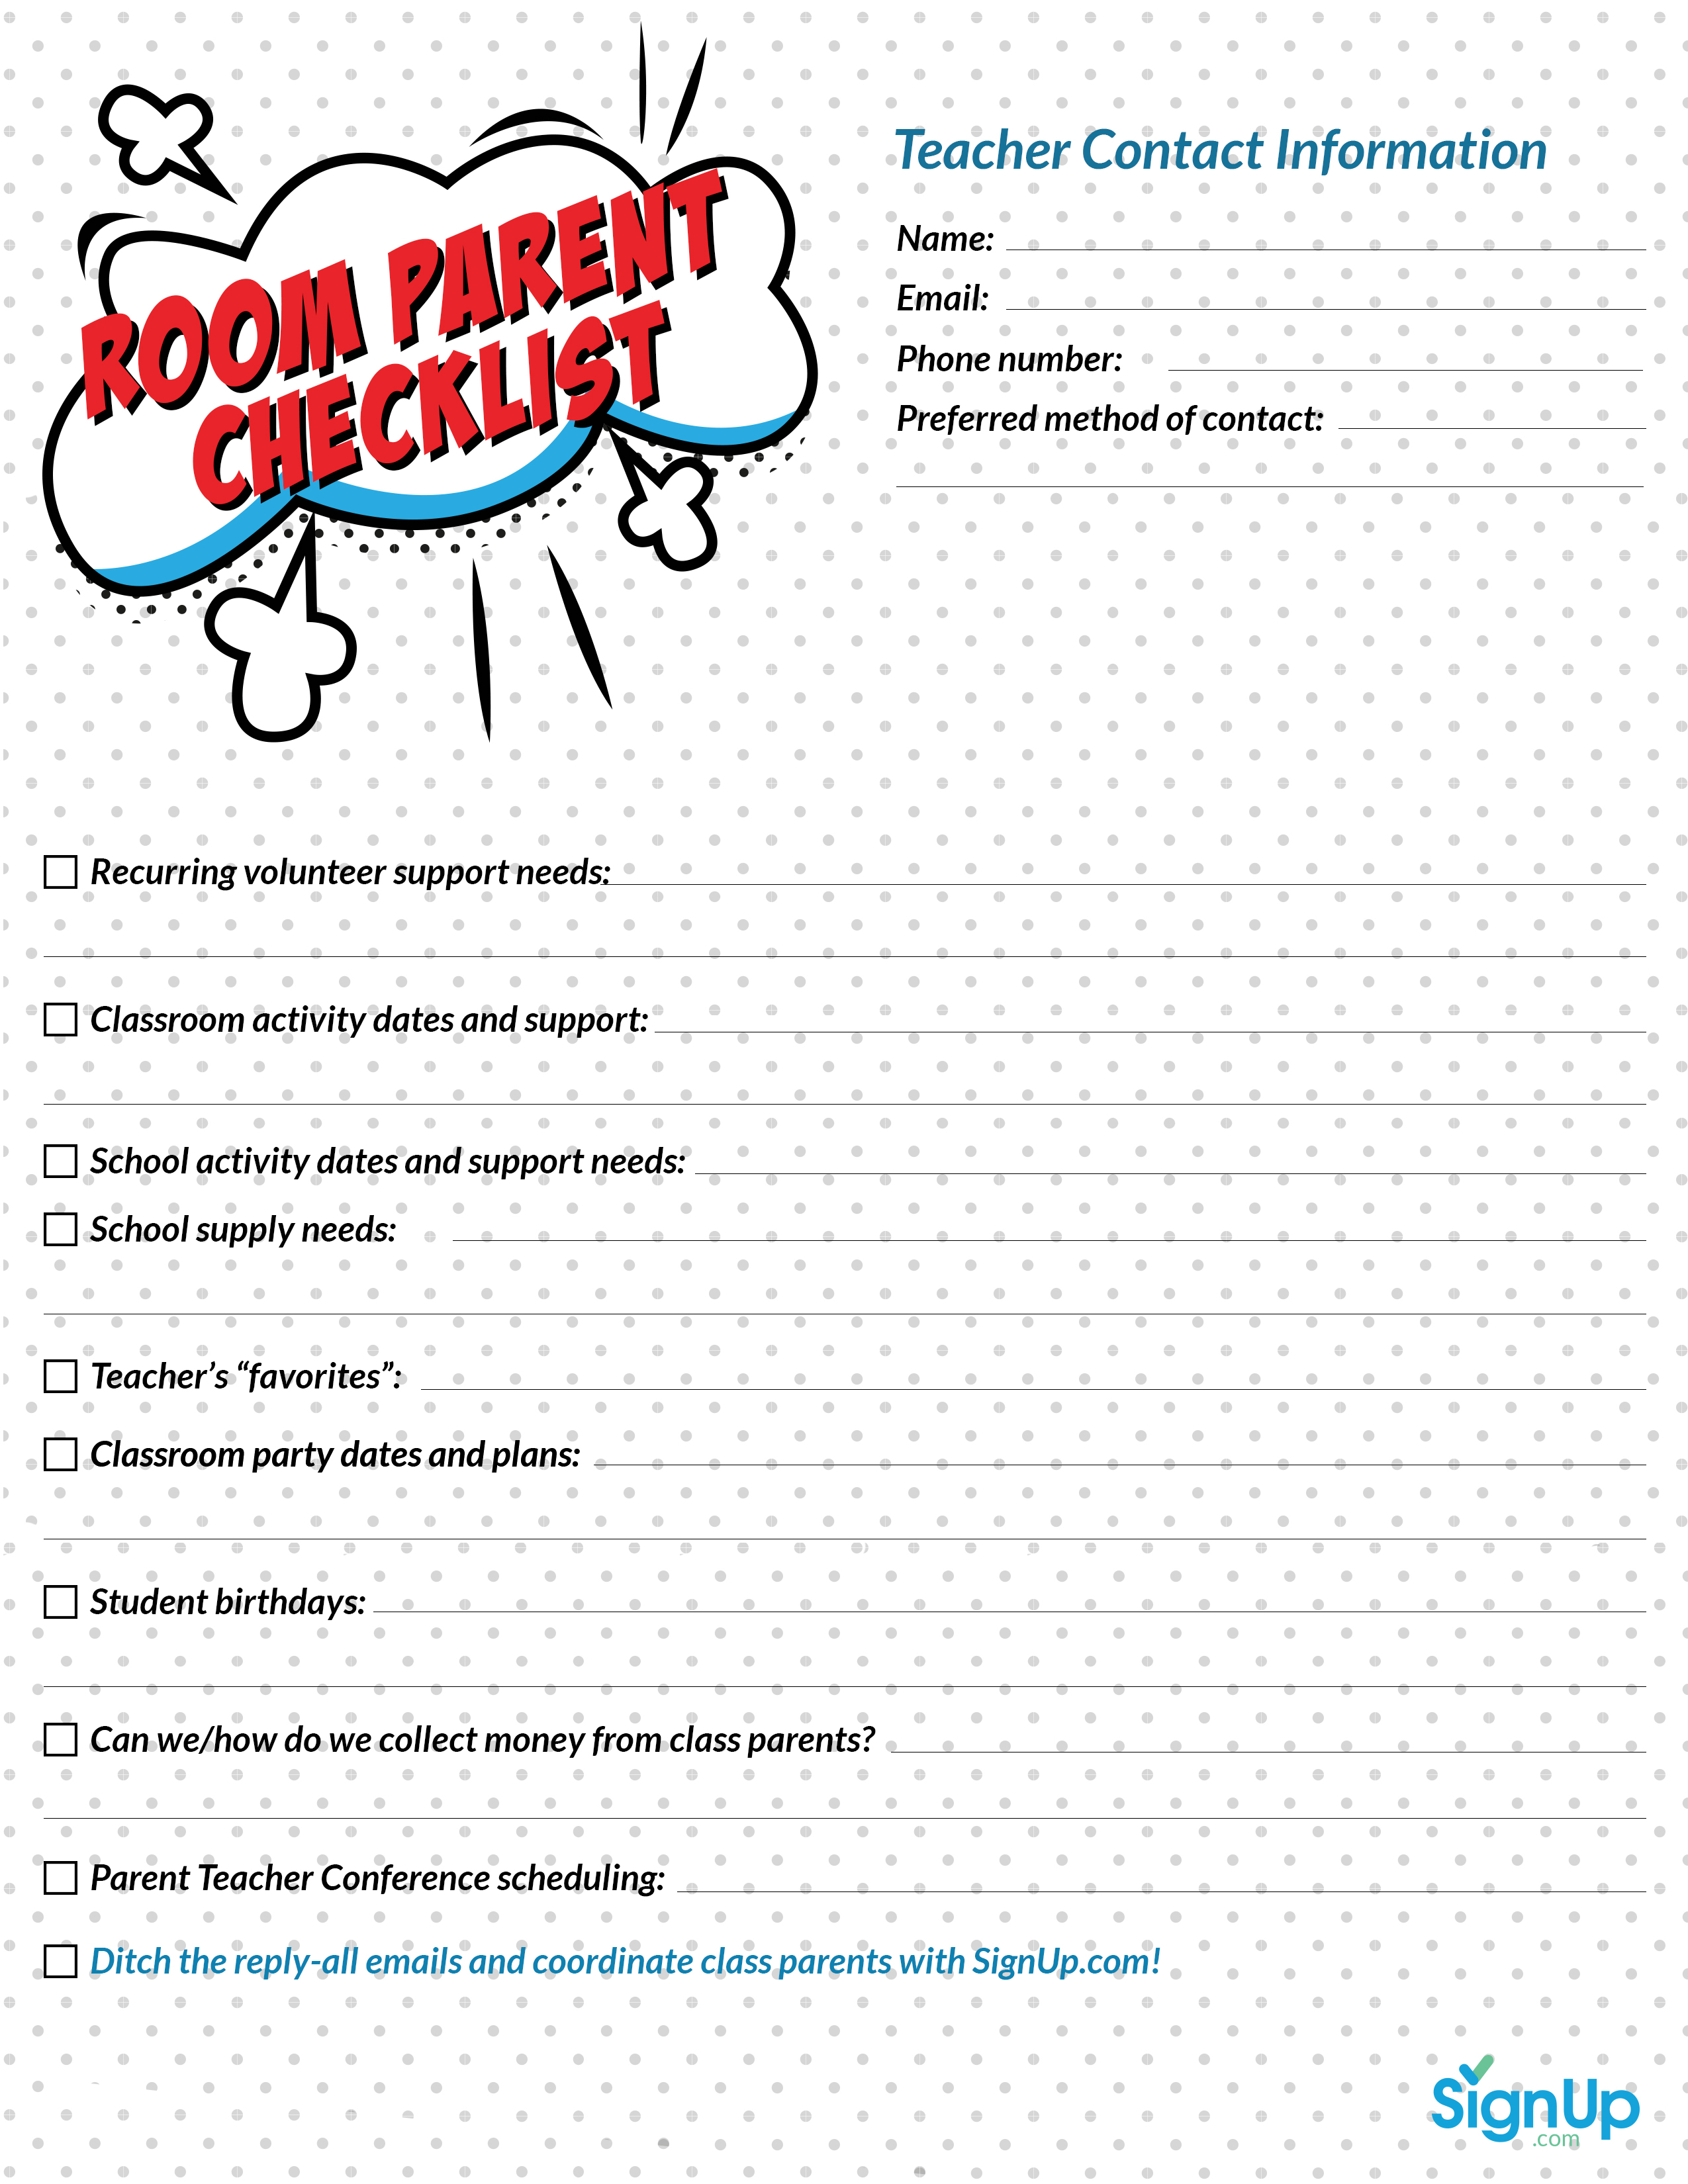 free printable room parent checklist for classrooms